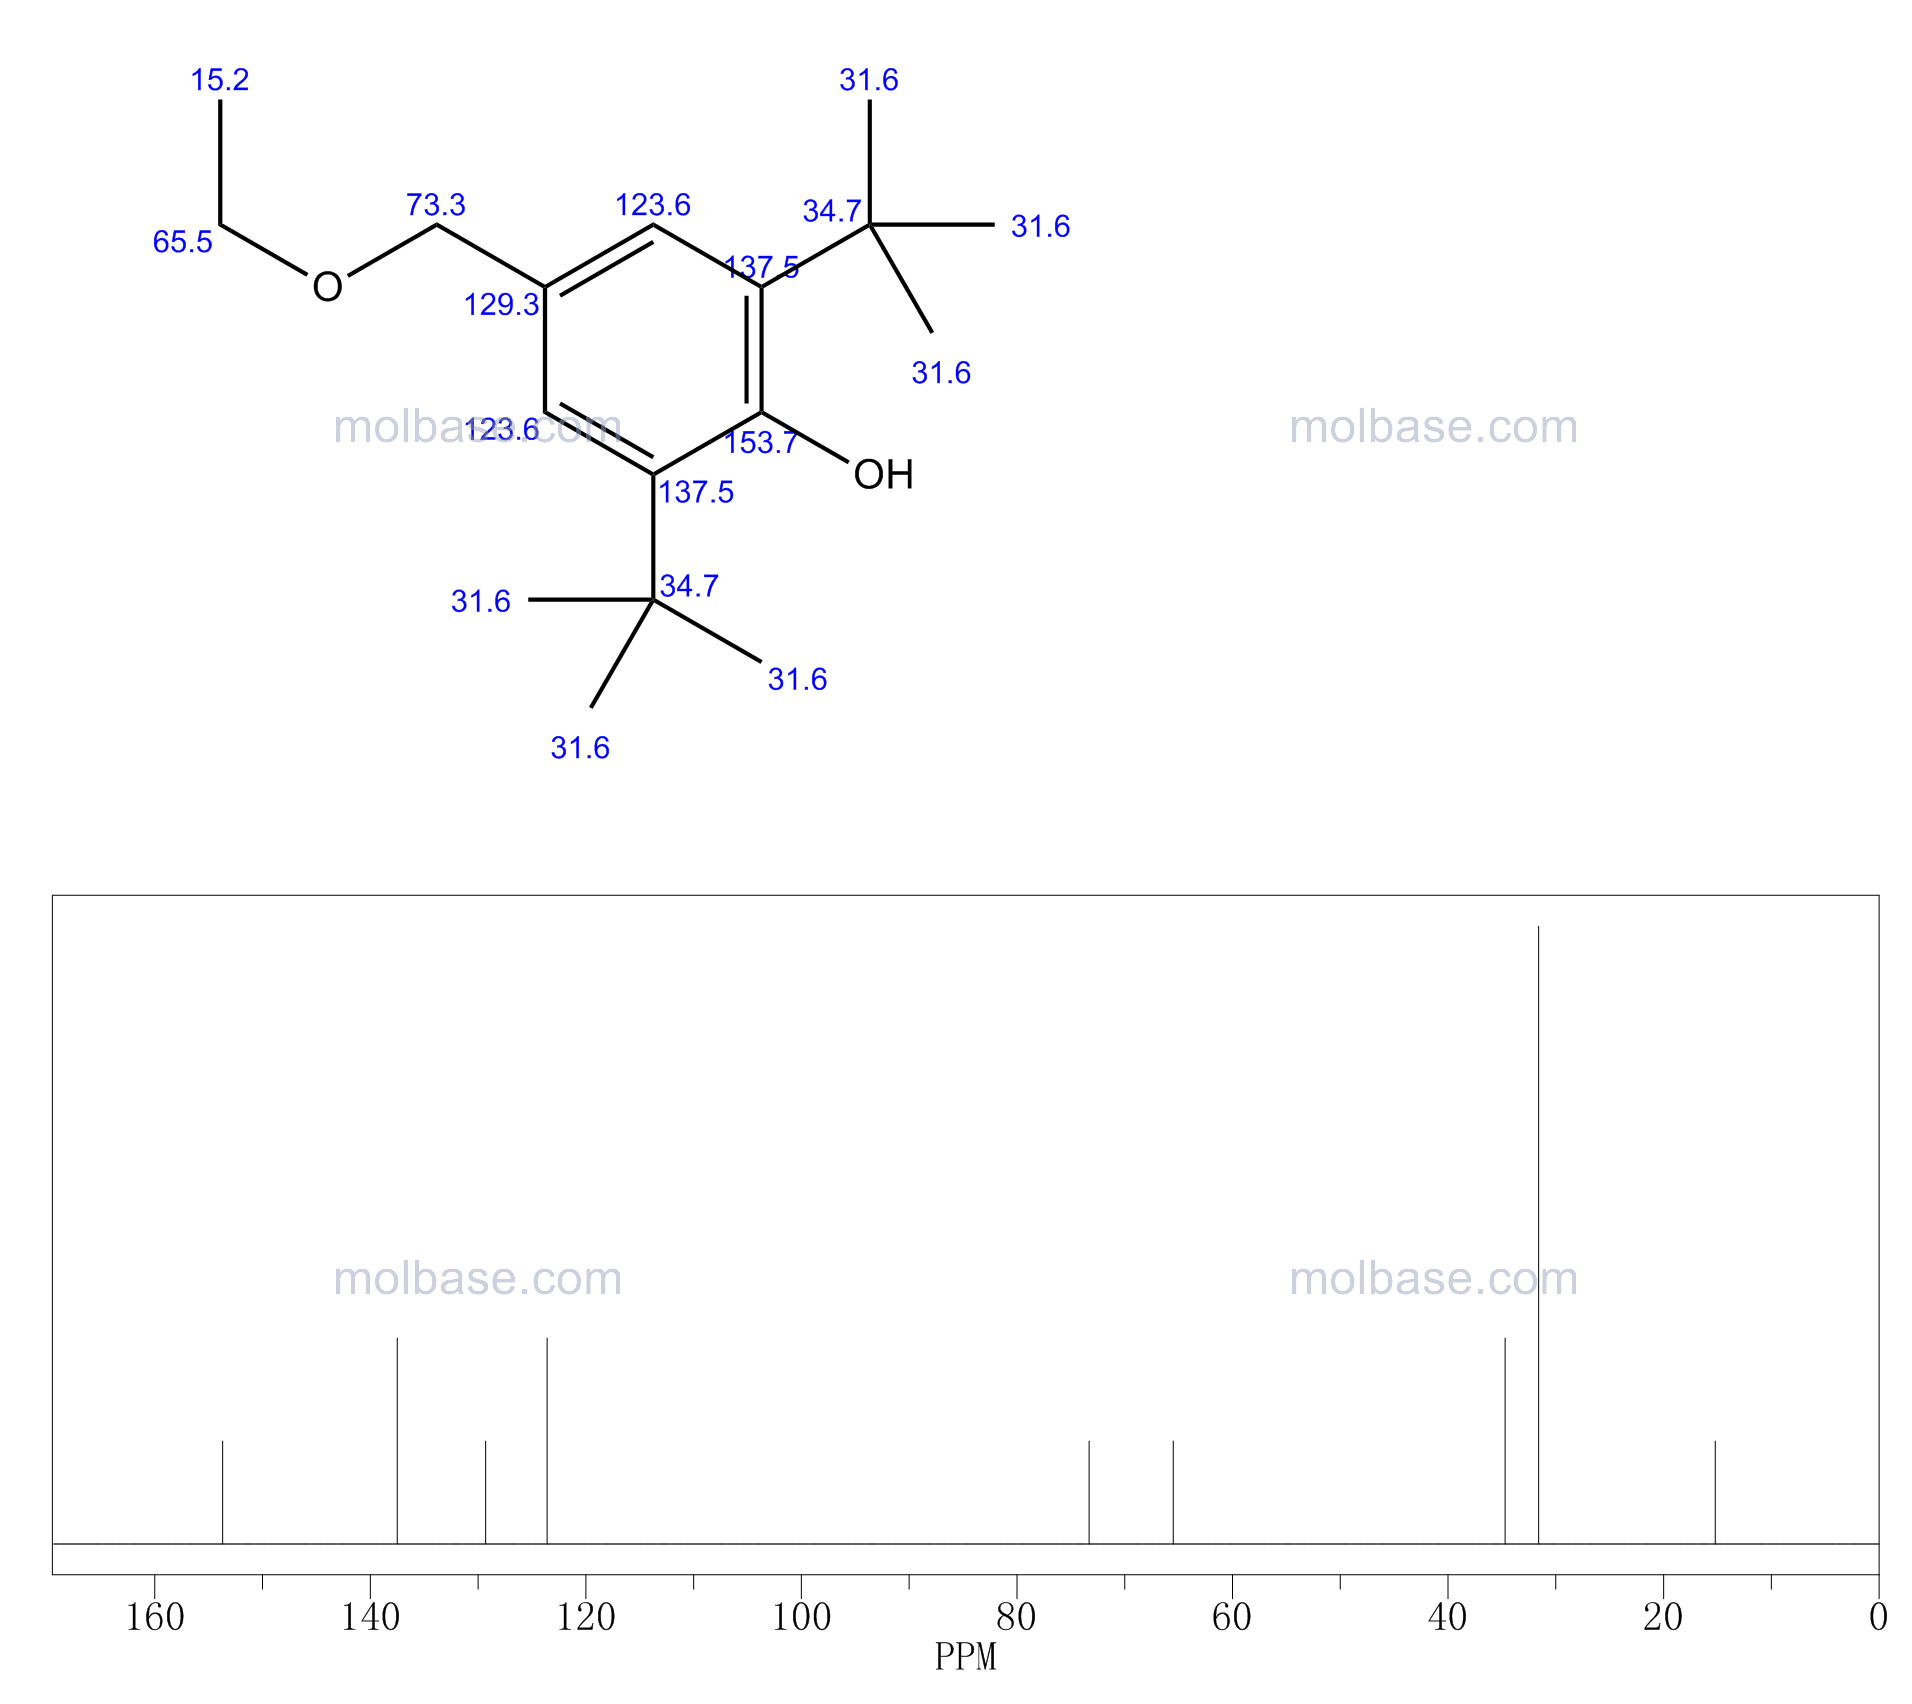 2,6-ditert-butyl-4-(ethoxymethyl)phenol NMR spectra analysis, Chemical CAS NO. 3080-84-0 NMR spectral analysis, 2,6-ditert-butyl-4-(ethoxymethyl)phenol C-NMR spectrum